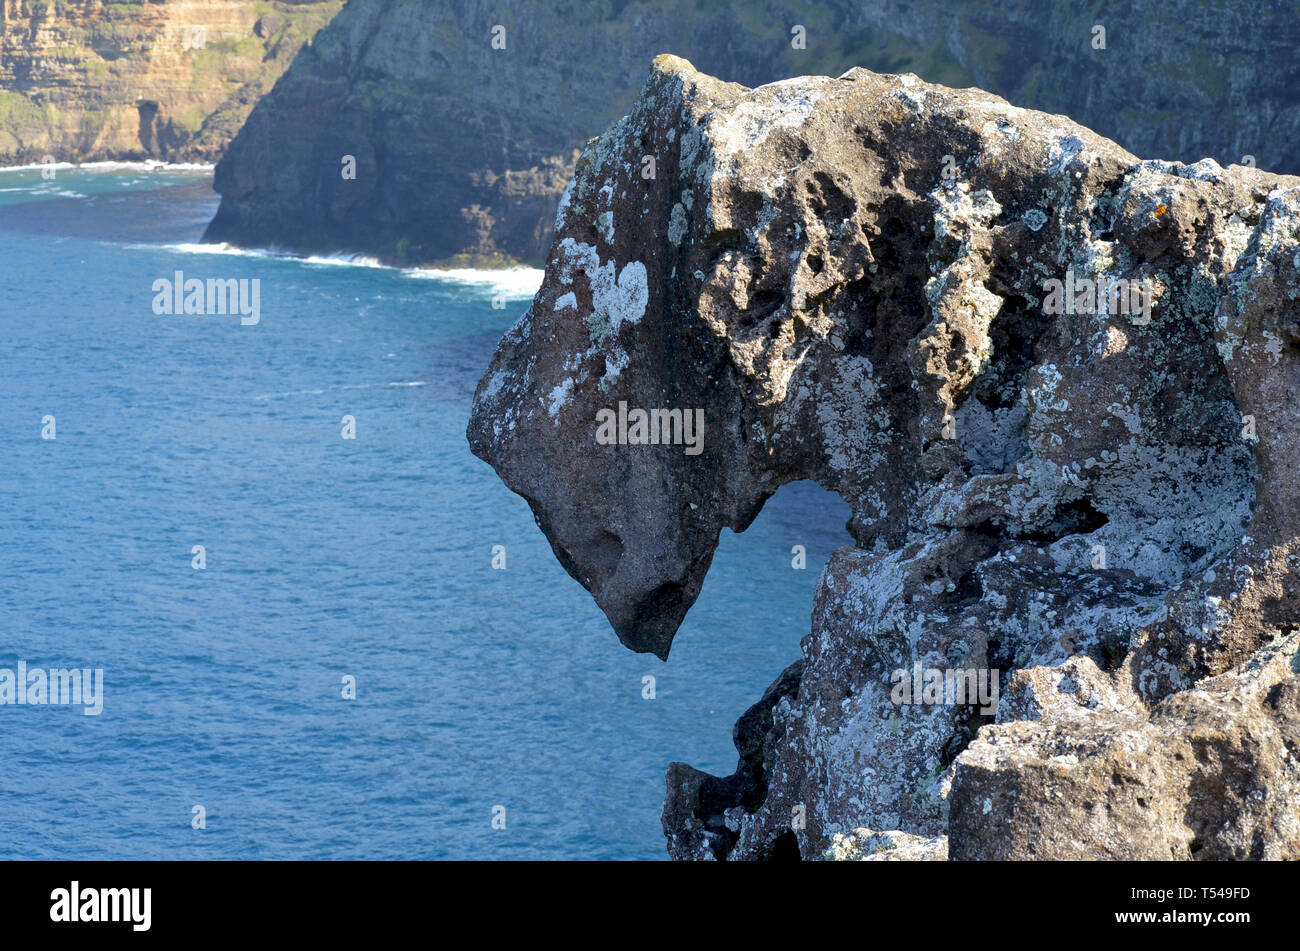 Dragon's Head, a rock sculpted by wind erosion in Anjos Bay, northen coast of Santa Maria island, Azores - Stock Image